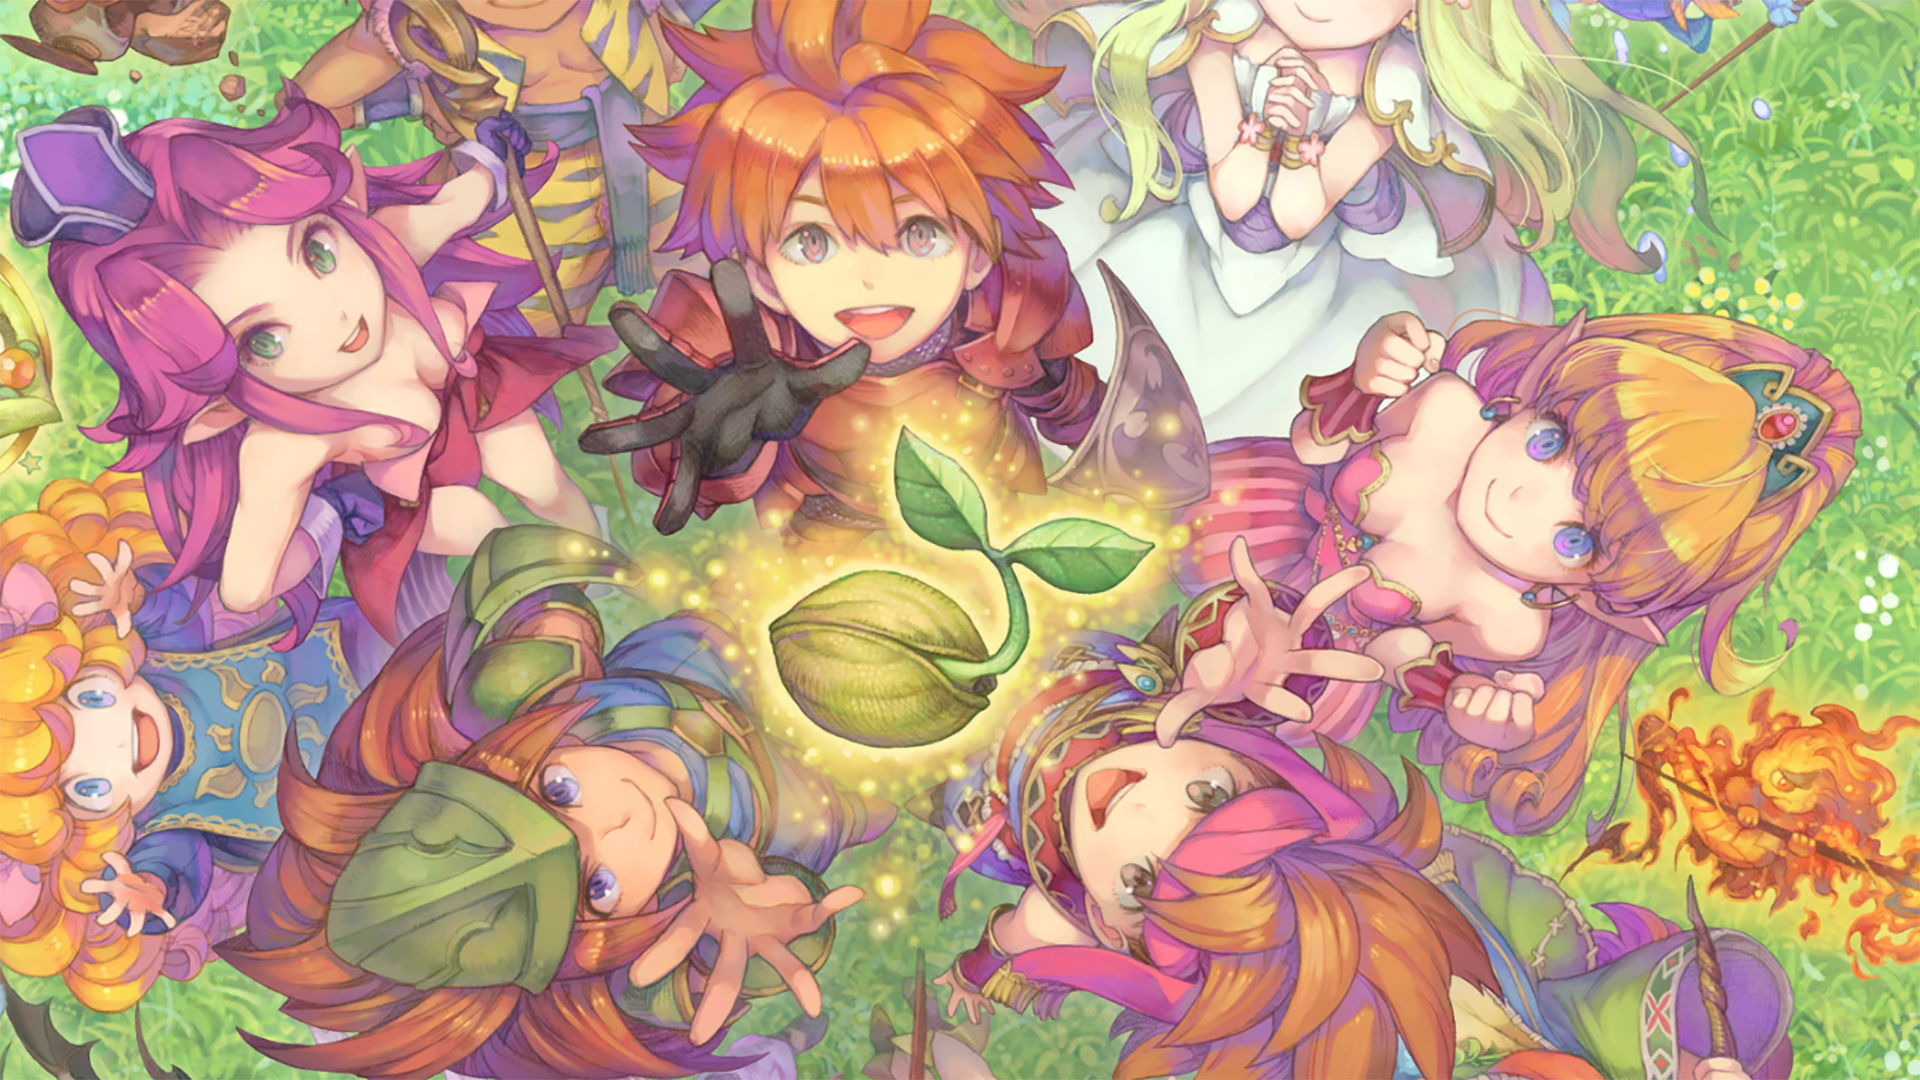 New Mana game for console currently in development